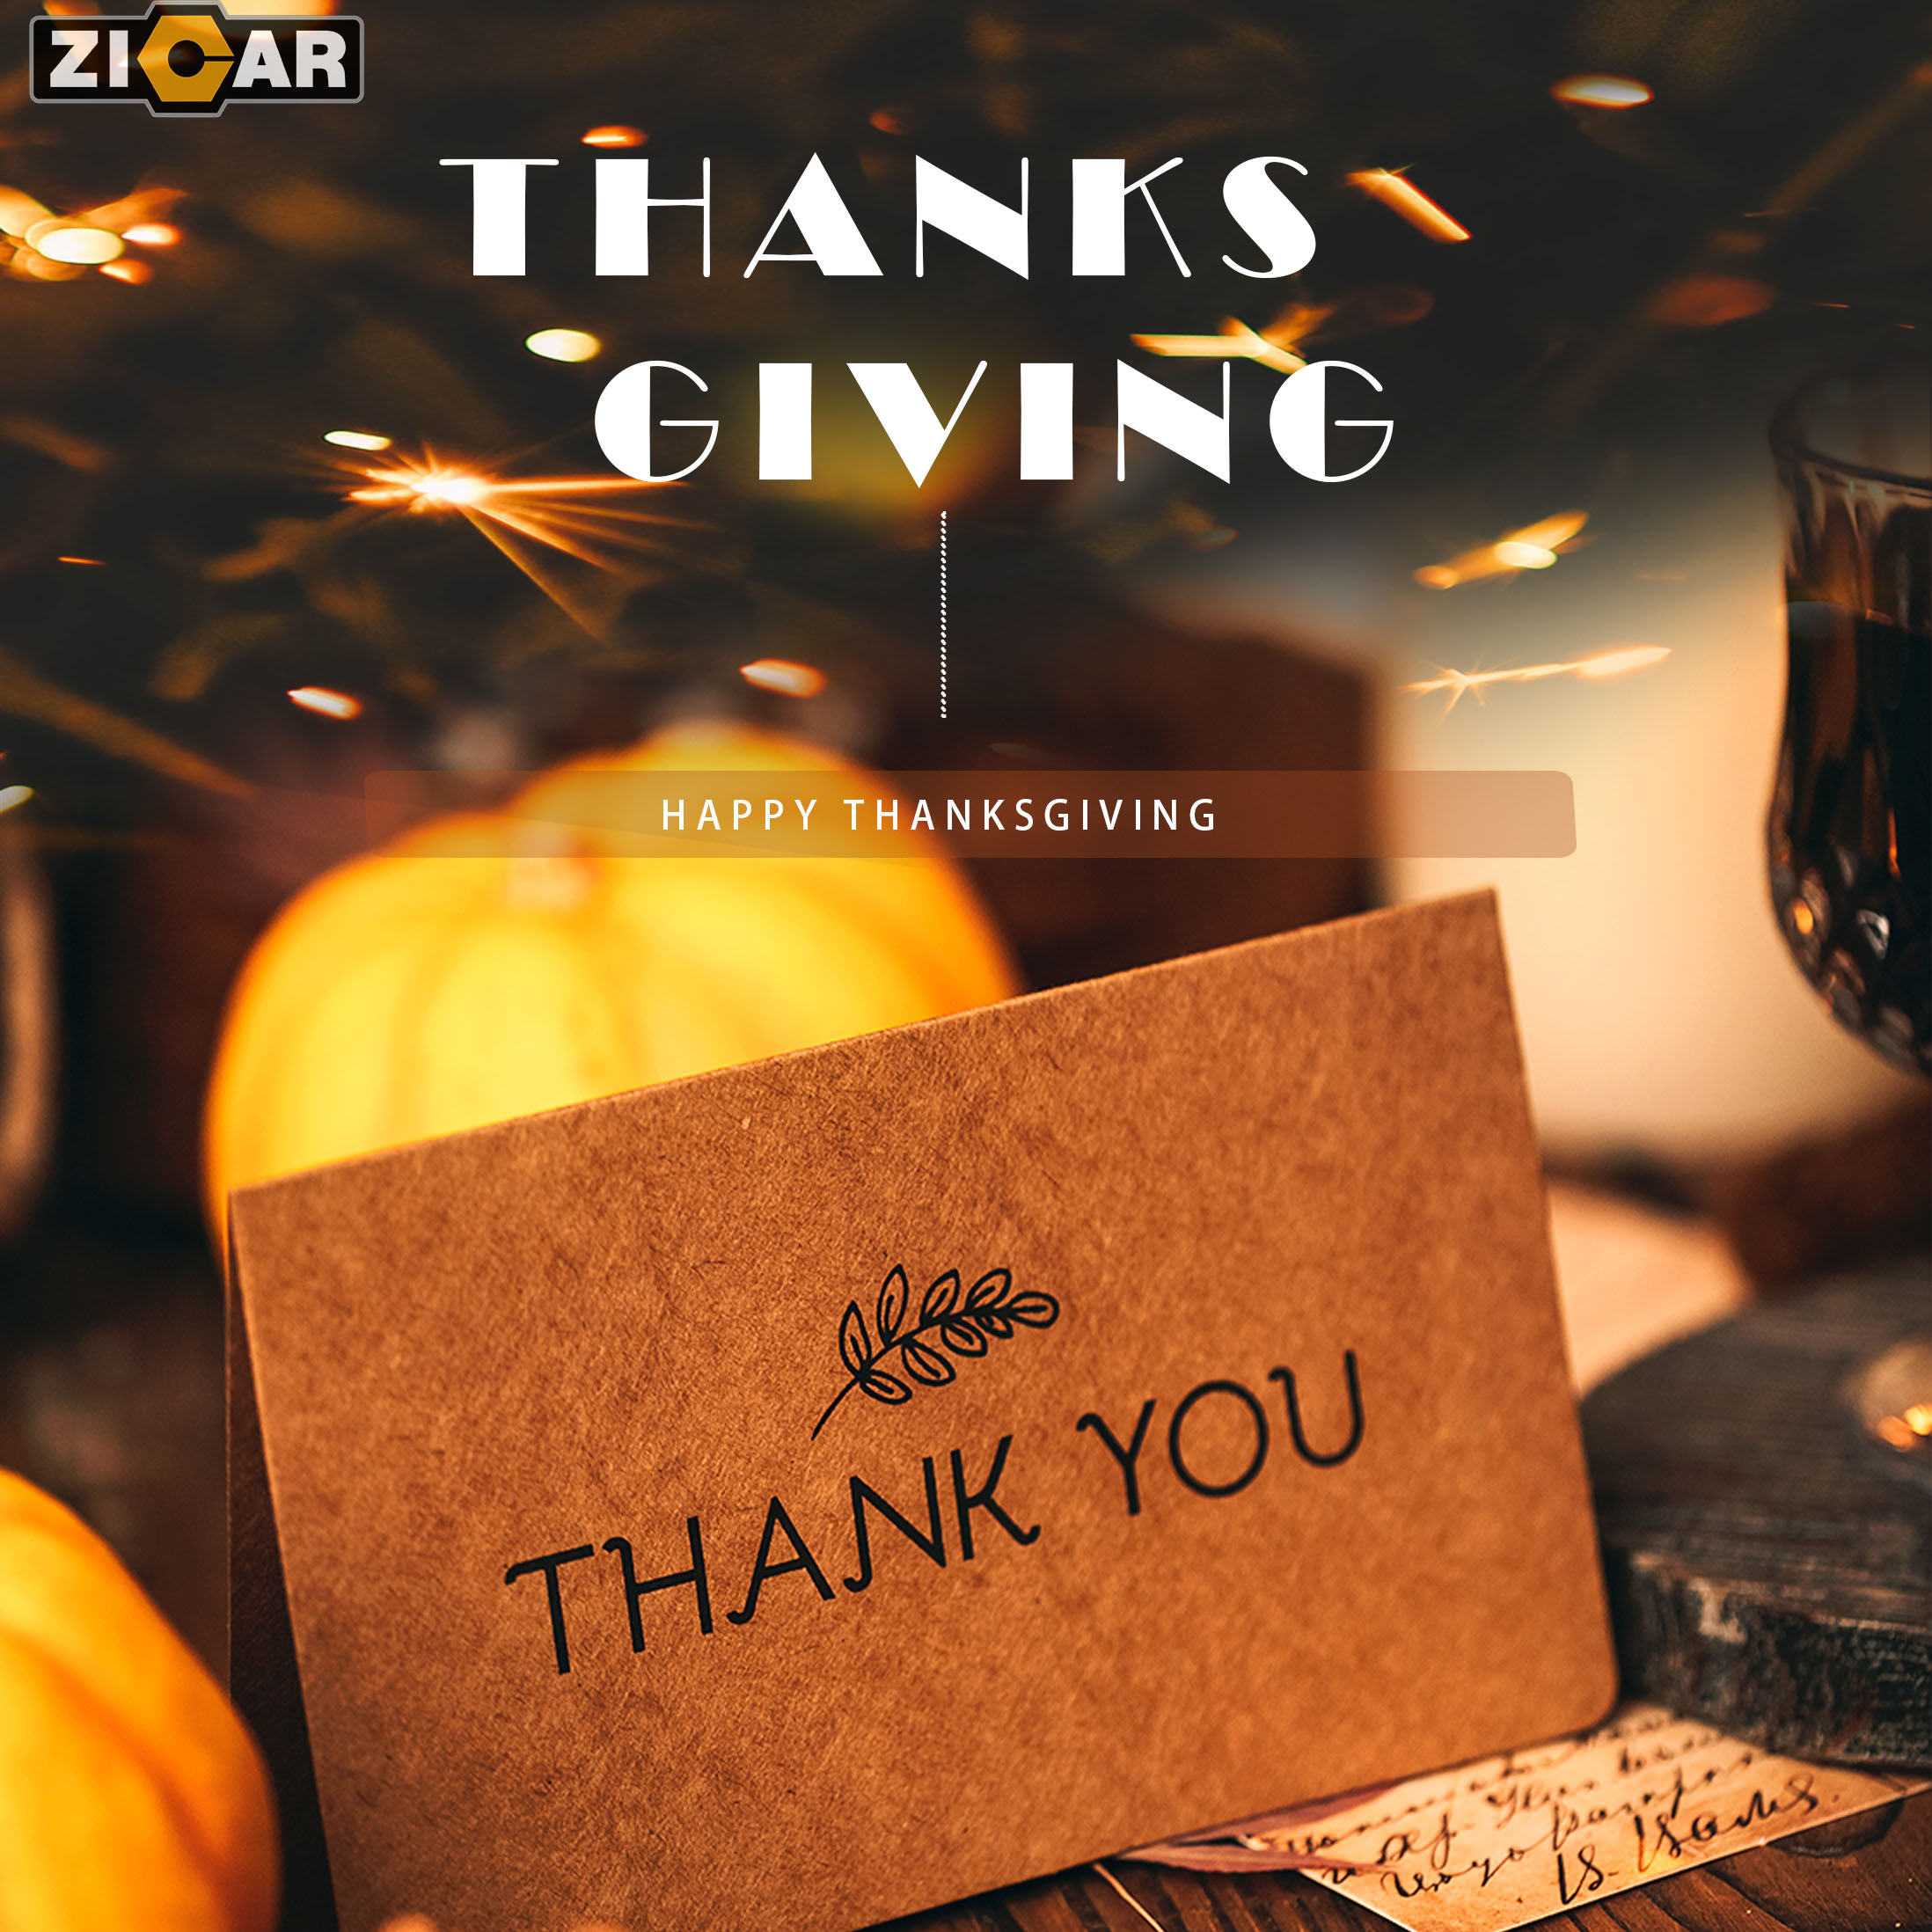 Zicar wish you a very happy and blessed Thanksgiving!